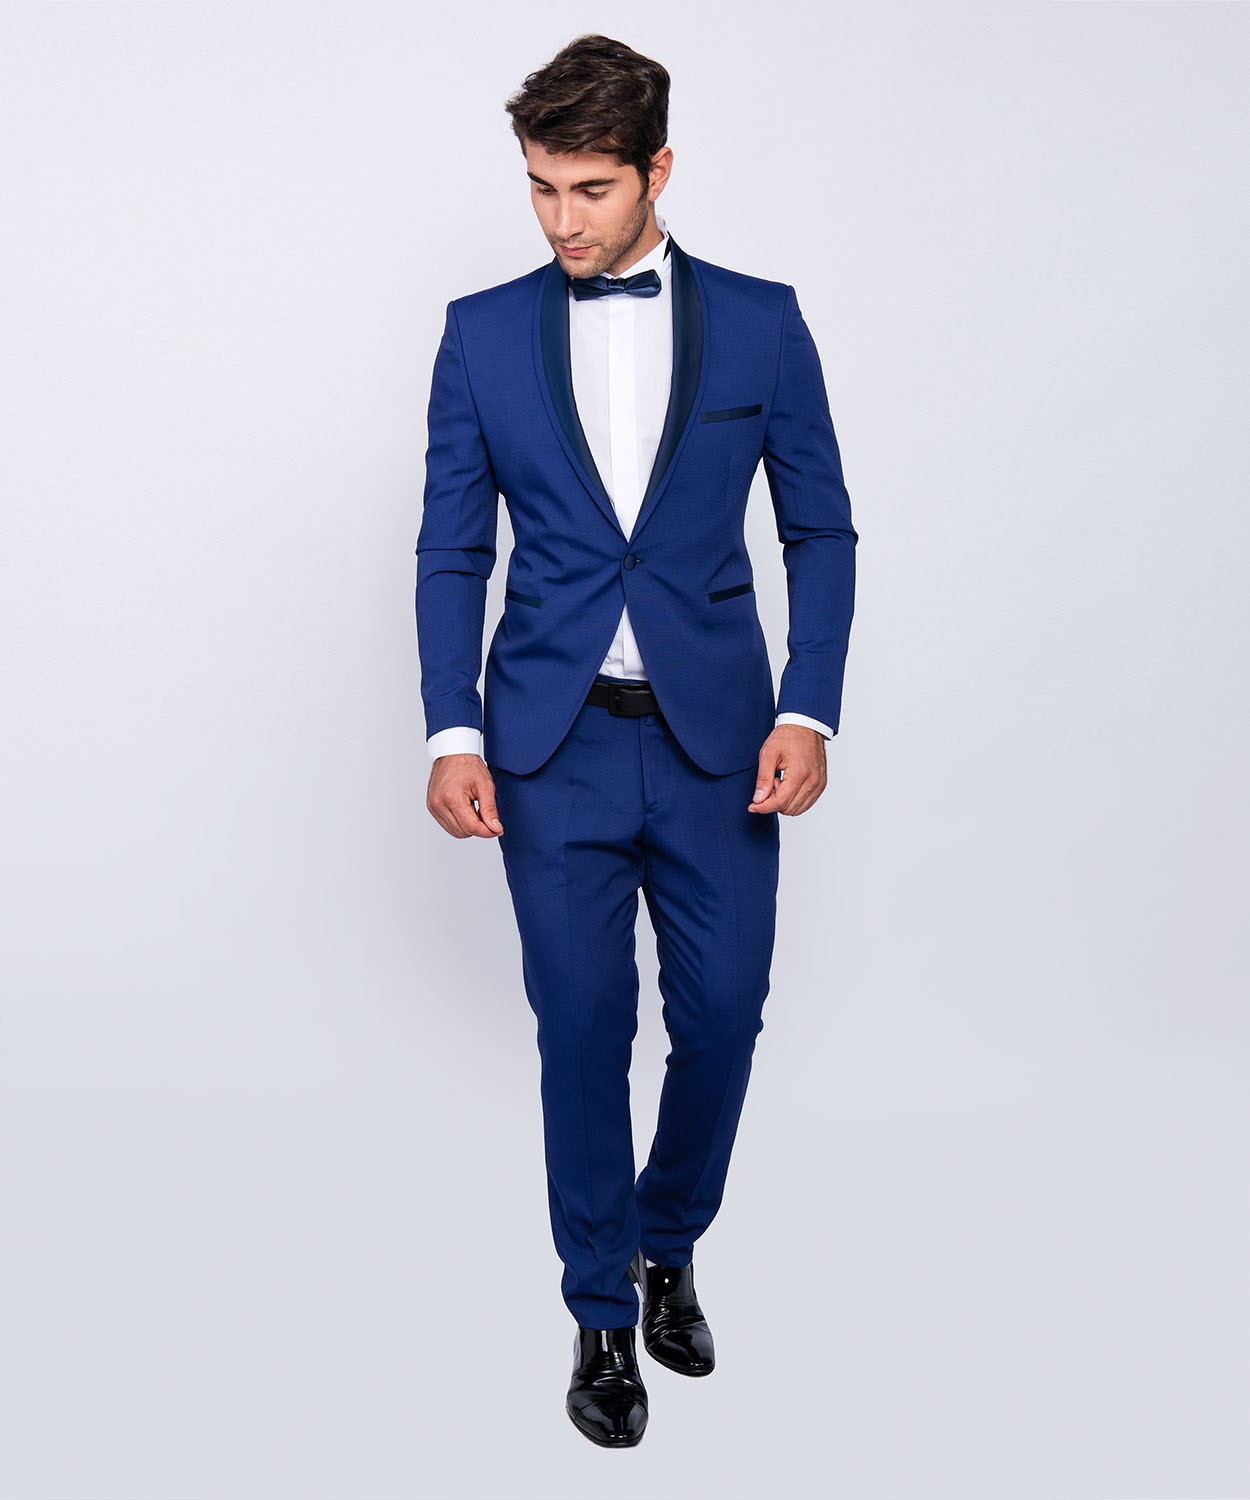 slim fit herren smoking in blau anzug hochzeit b hne sakko ebay. Black Bedroom Furniture Sets. Home Design Ideas